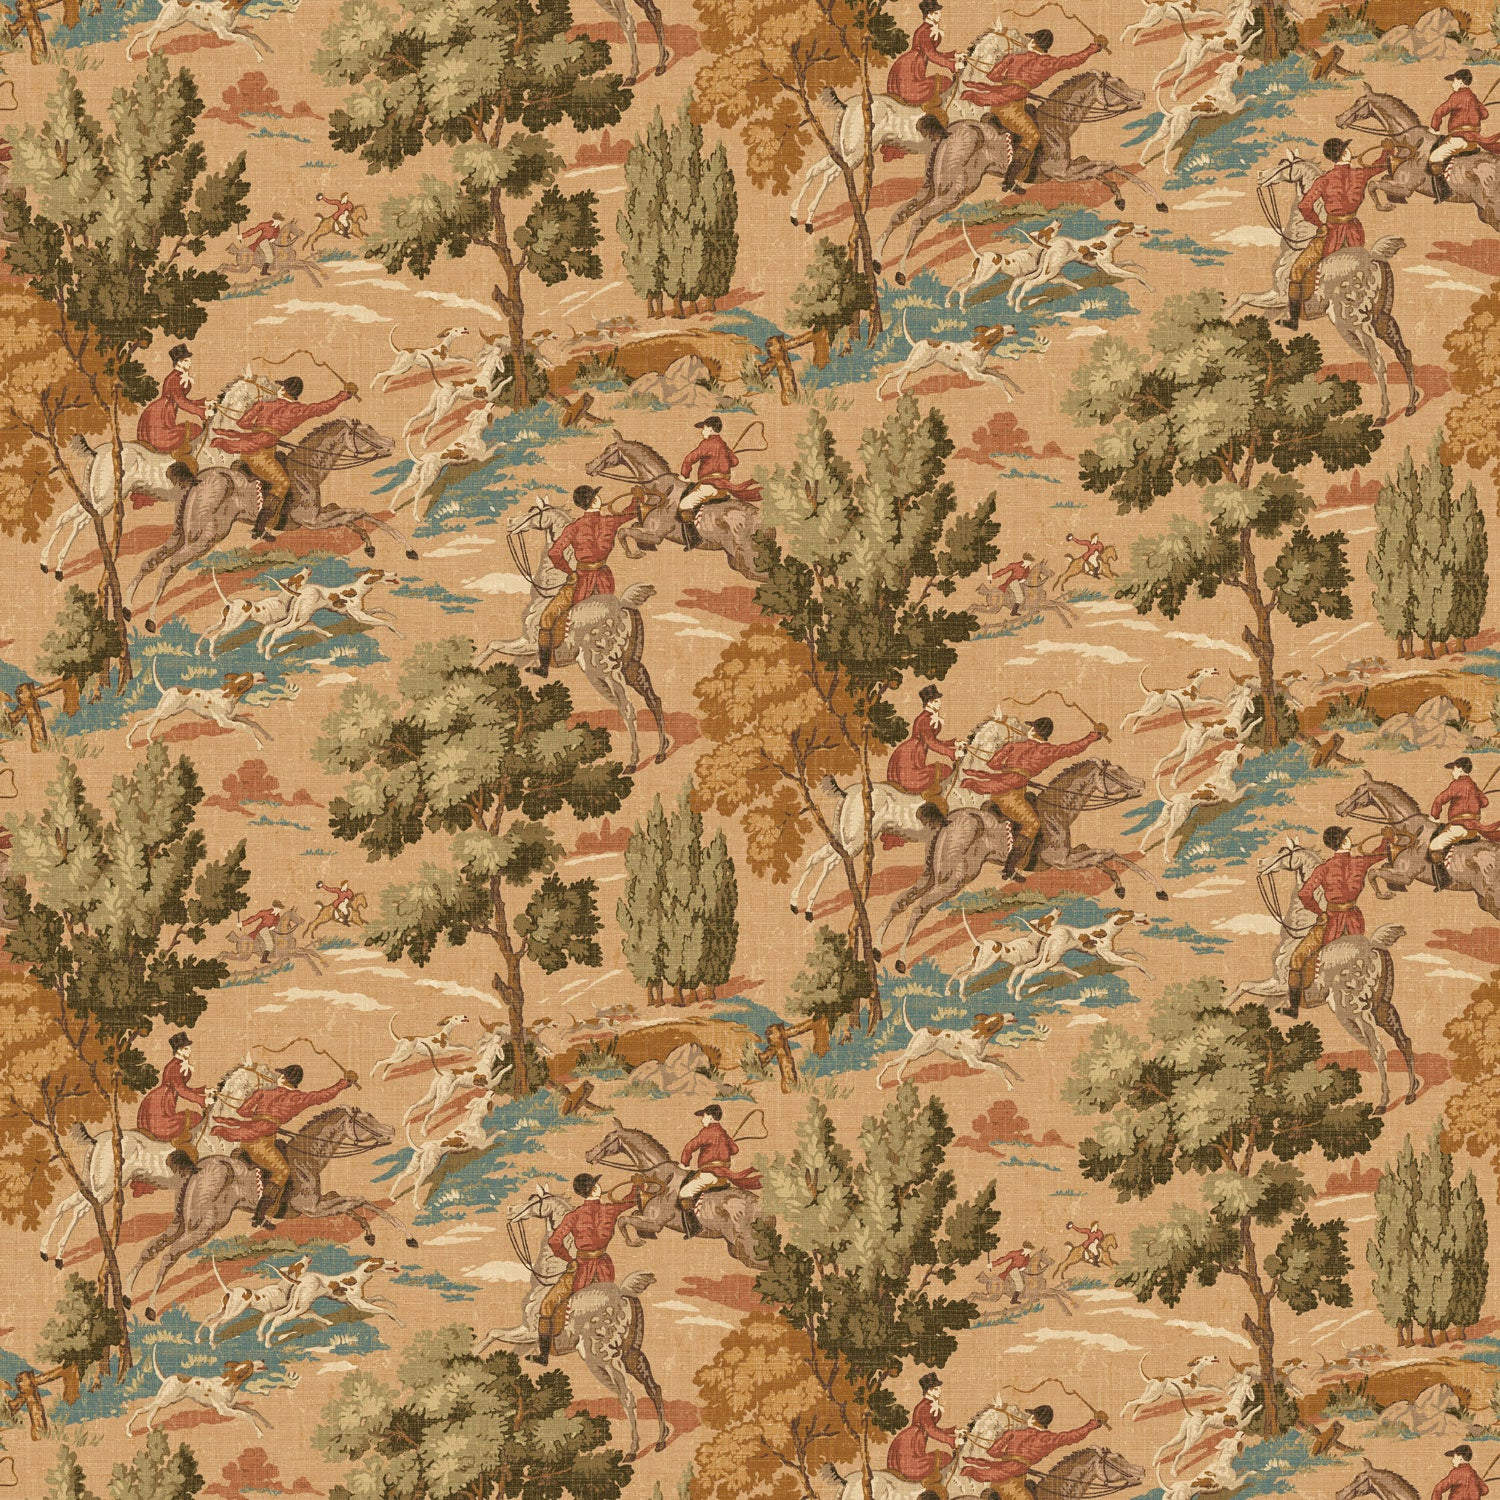 Wallpaper for walls with a vintage English hunting scene in sepia tones